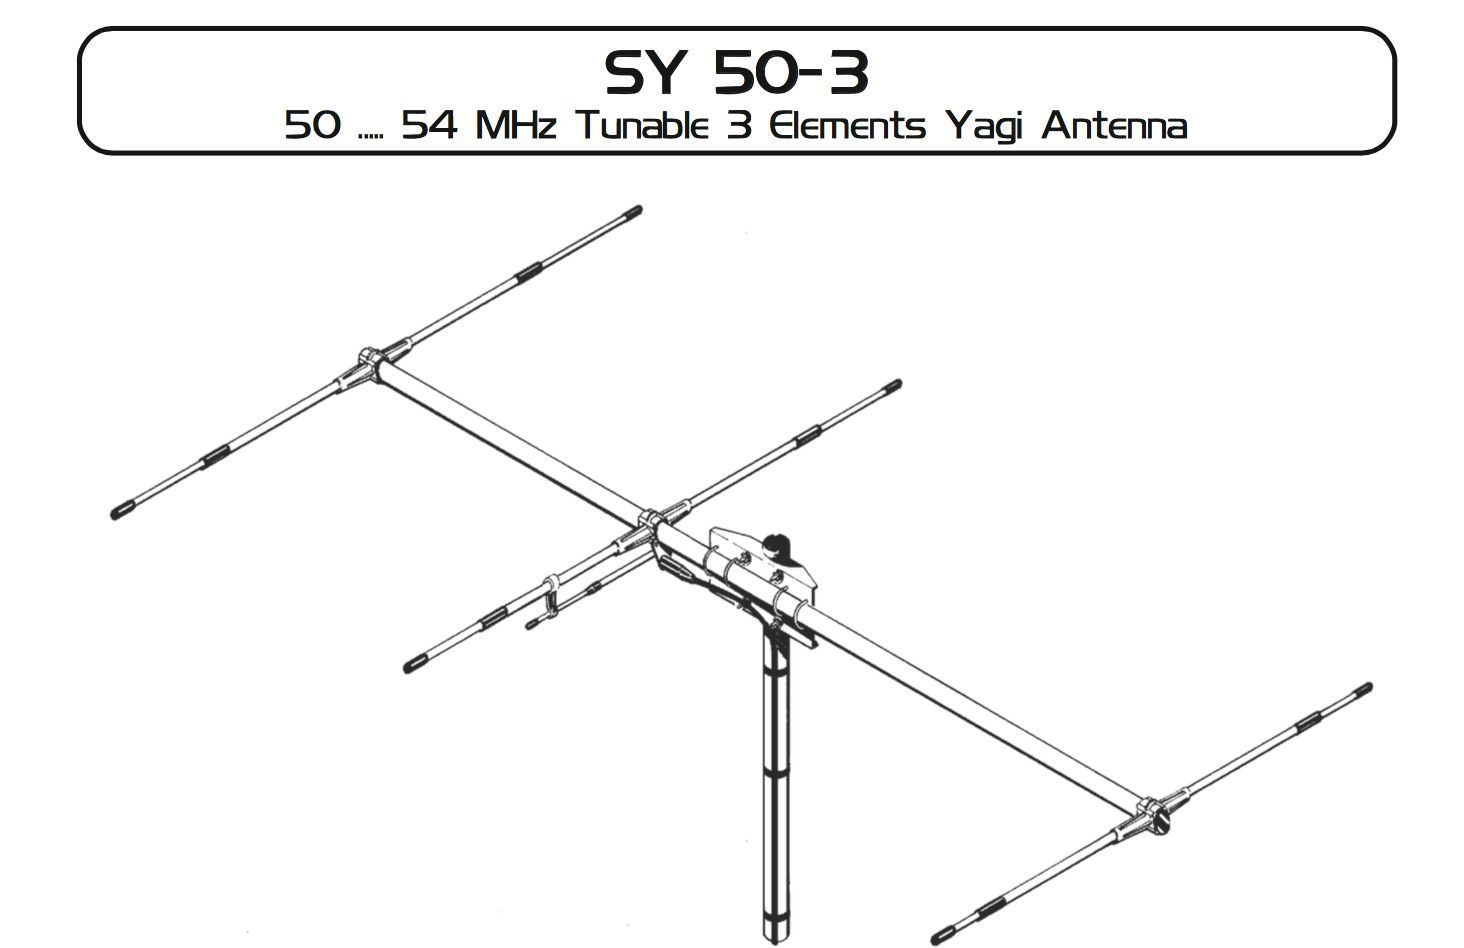 Sirio 50-54Mhz SY 50-3 6 meter Tunable 3 elements Yagi Antenna